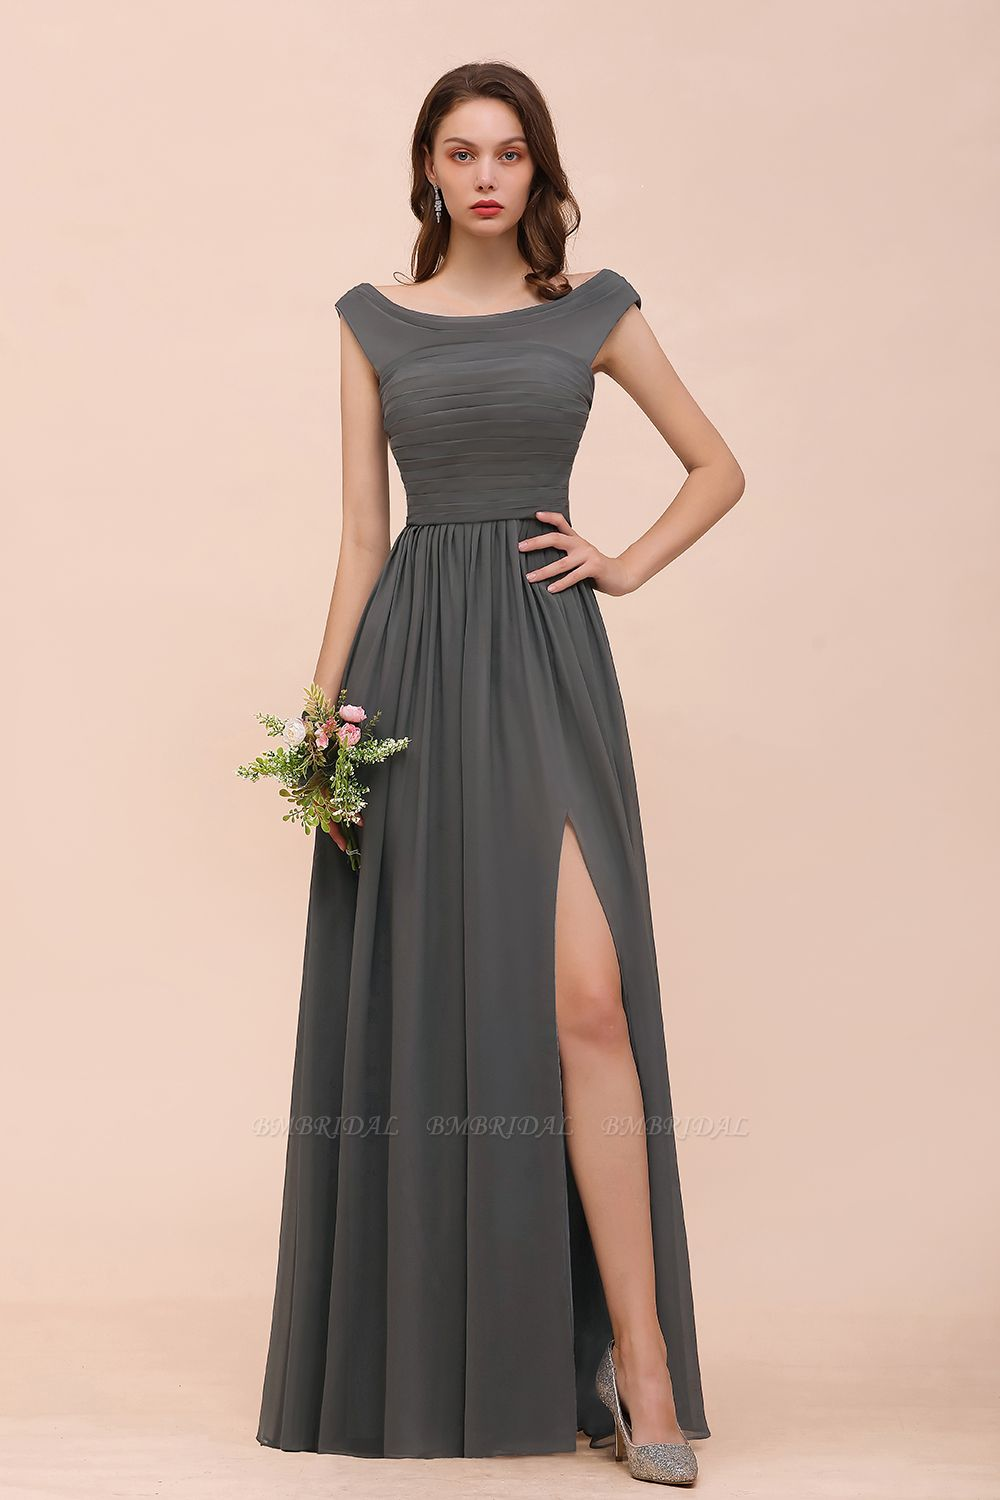 Steel Grey Off The Shoulder Ruffle Bridesmaid Dress with Slit